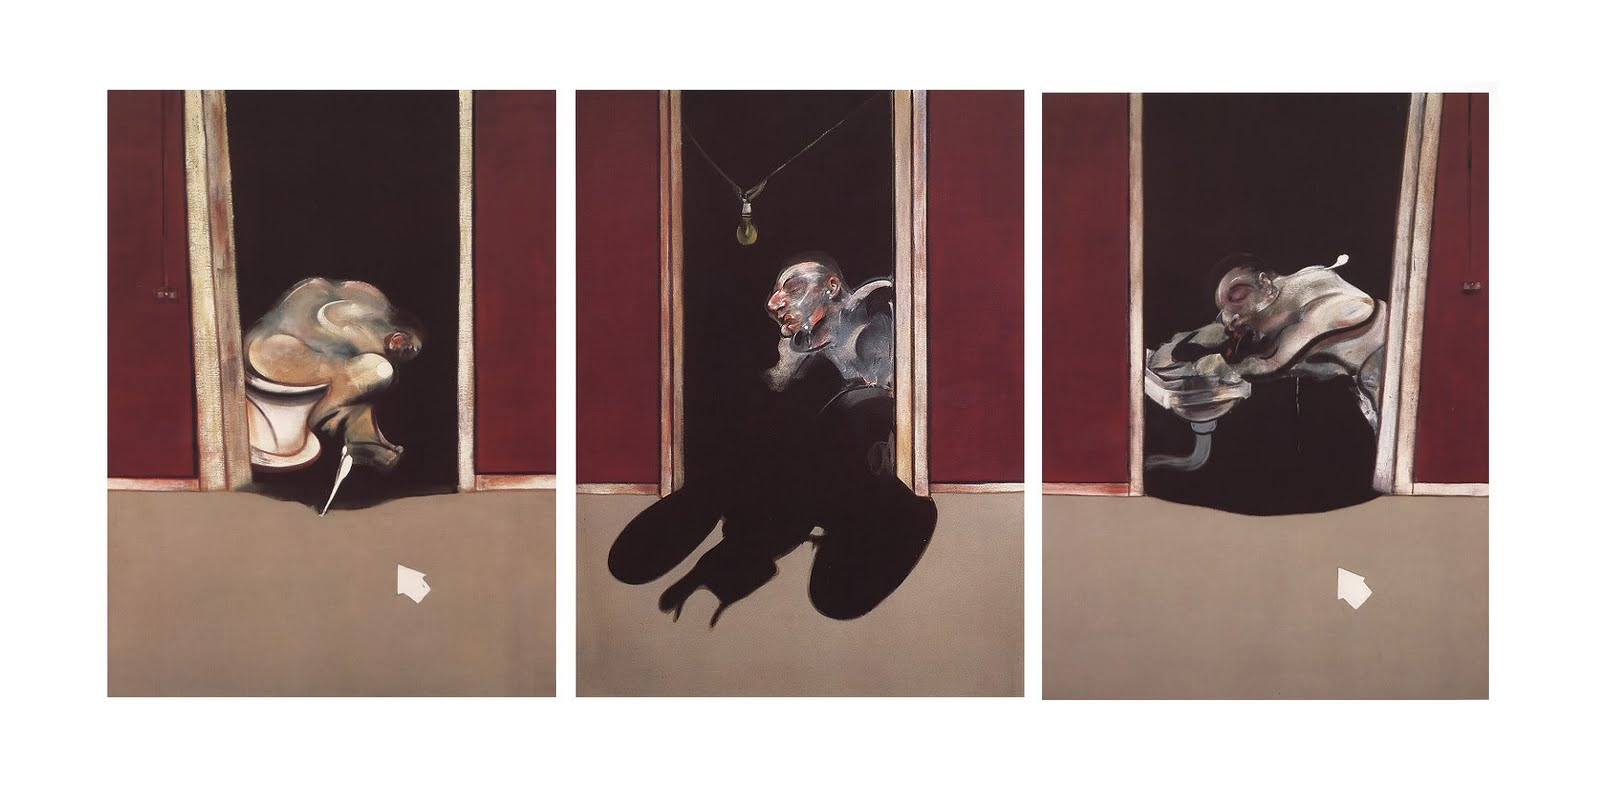 Francis Bacon, 'Triptych May-June, 1973', 1973. Photo: The Paris Review